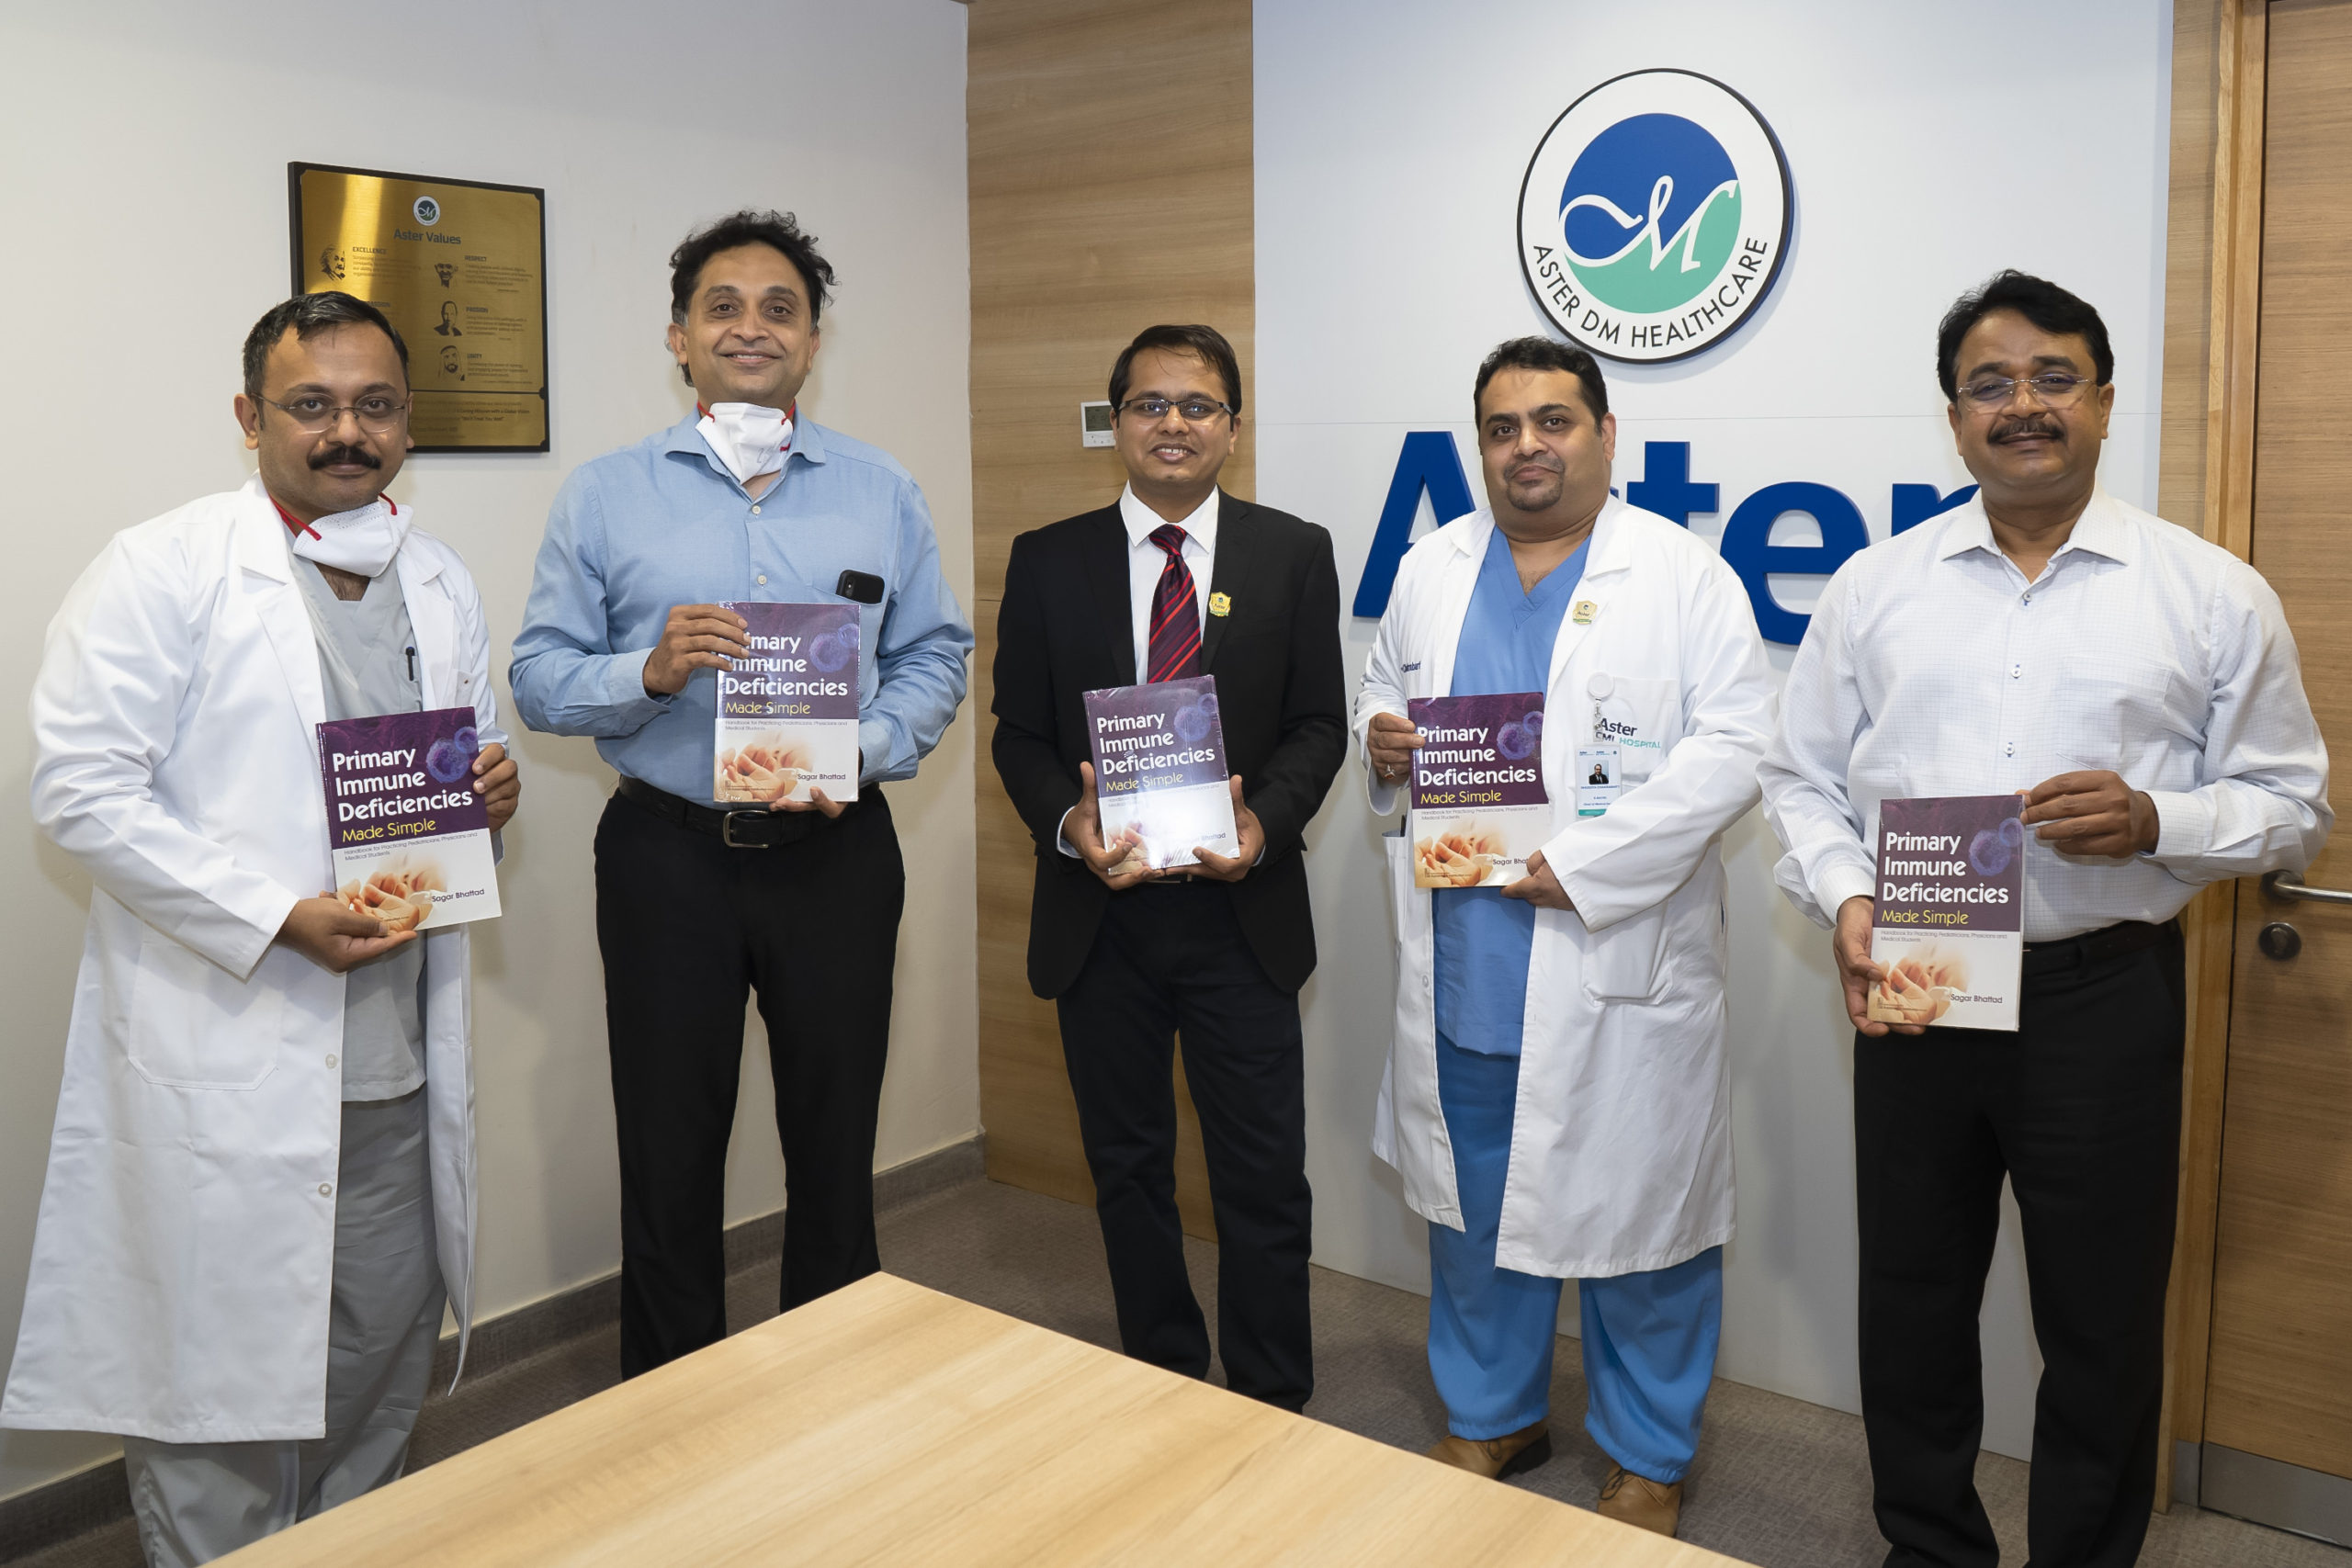 Book on immune deficiencies by Aster CMI